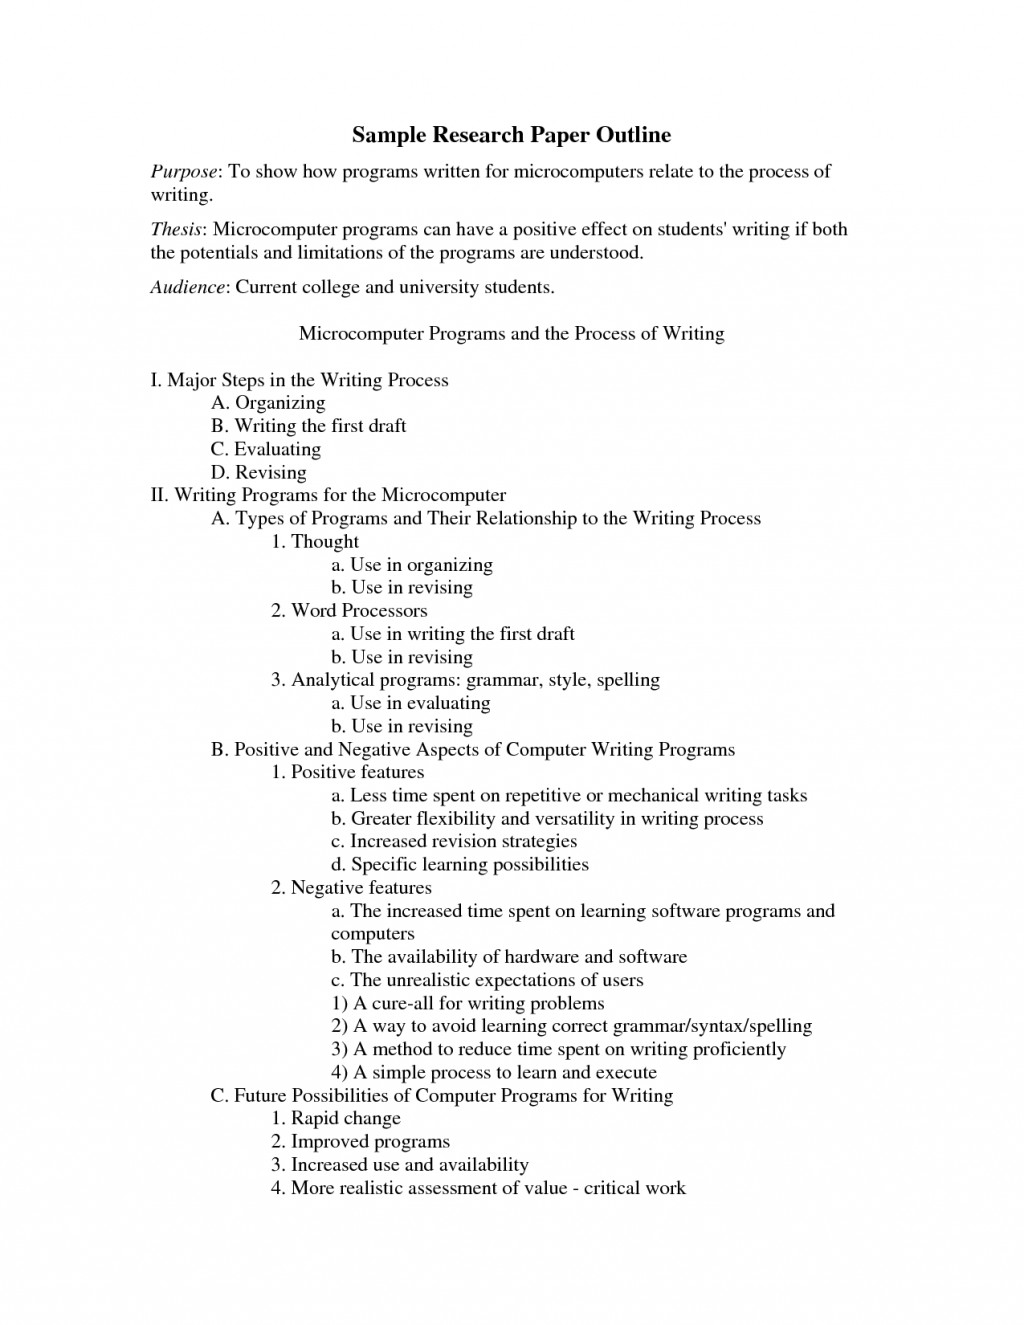 003 College Research Paper Outlines 477364 How To Do An For Stupendous Outline A Example Write Sample Large